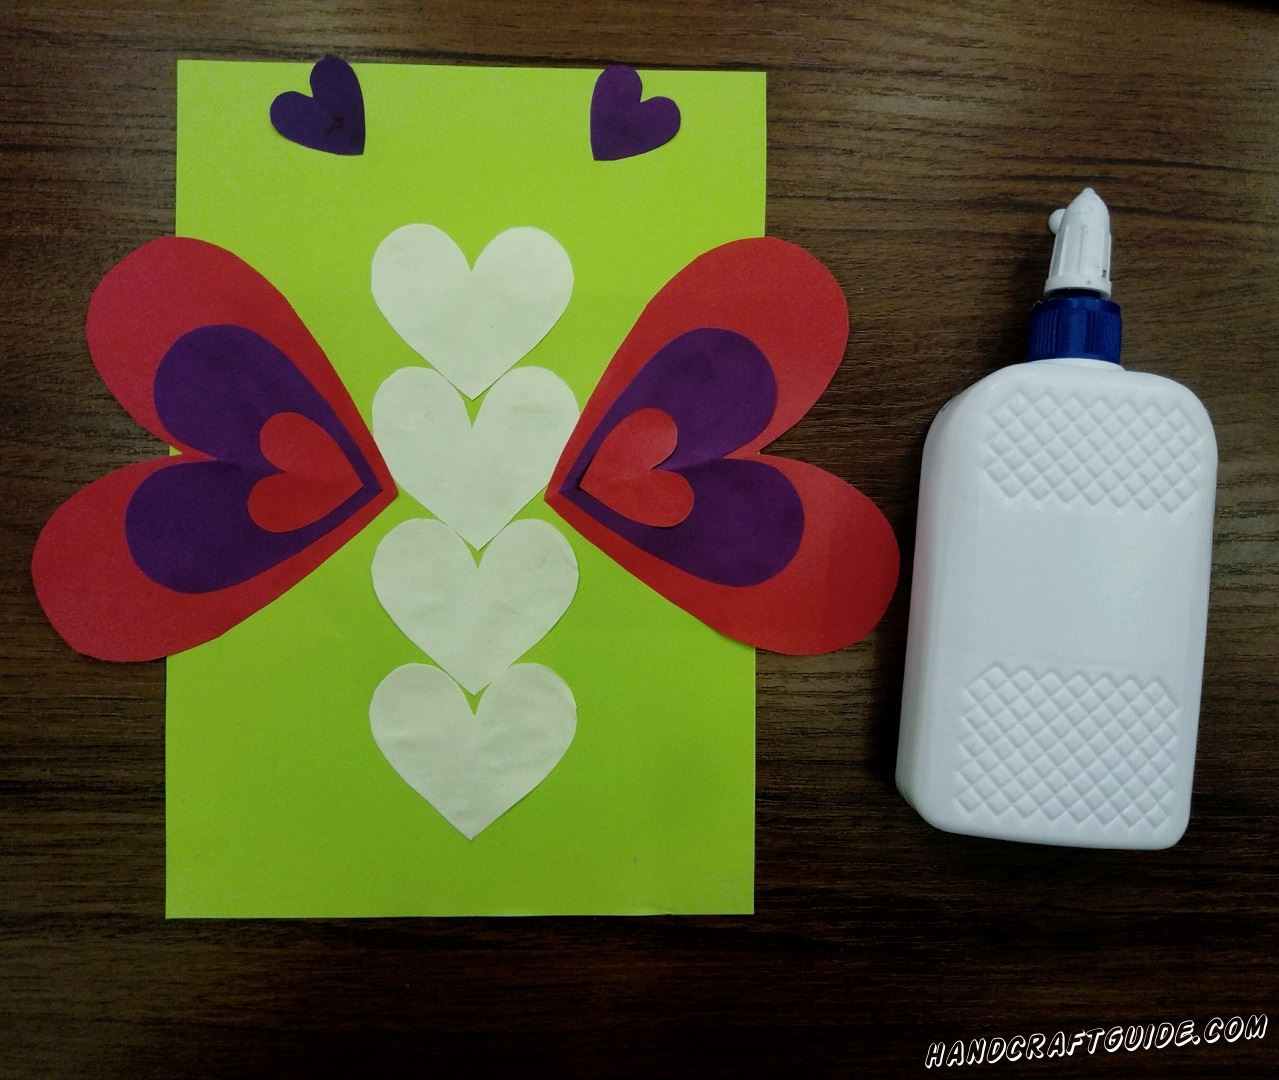 Take green sheet of paper and glue 4 yellow hearts one by one exactly in the middle of it. Between the second and the third hearts glue big red hearts on the sides. On top of them add large purple hearts and on top of them glue little red hearts. The main thing is not to get confused but the photo can help you. Above the butterfly glue 2 small purple hearts.